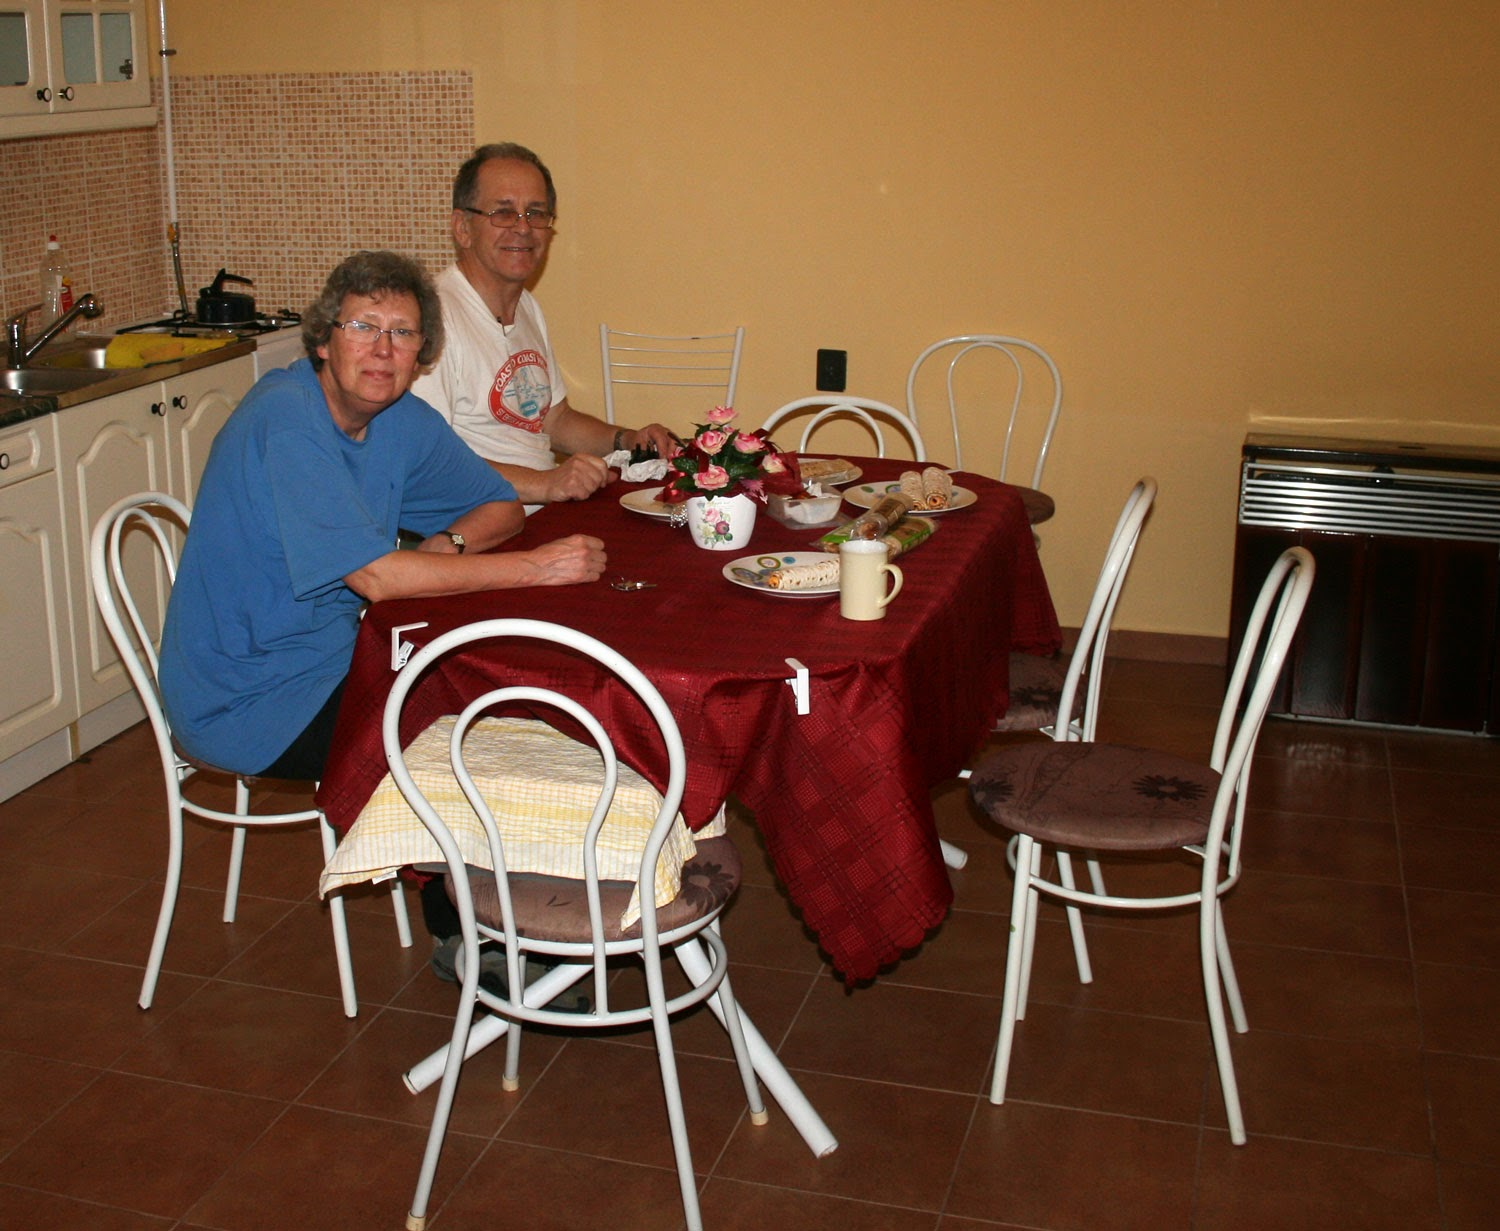 Dinner with my parents